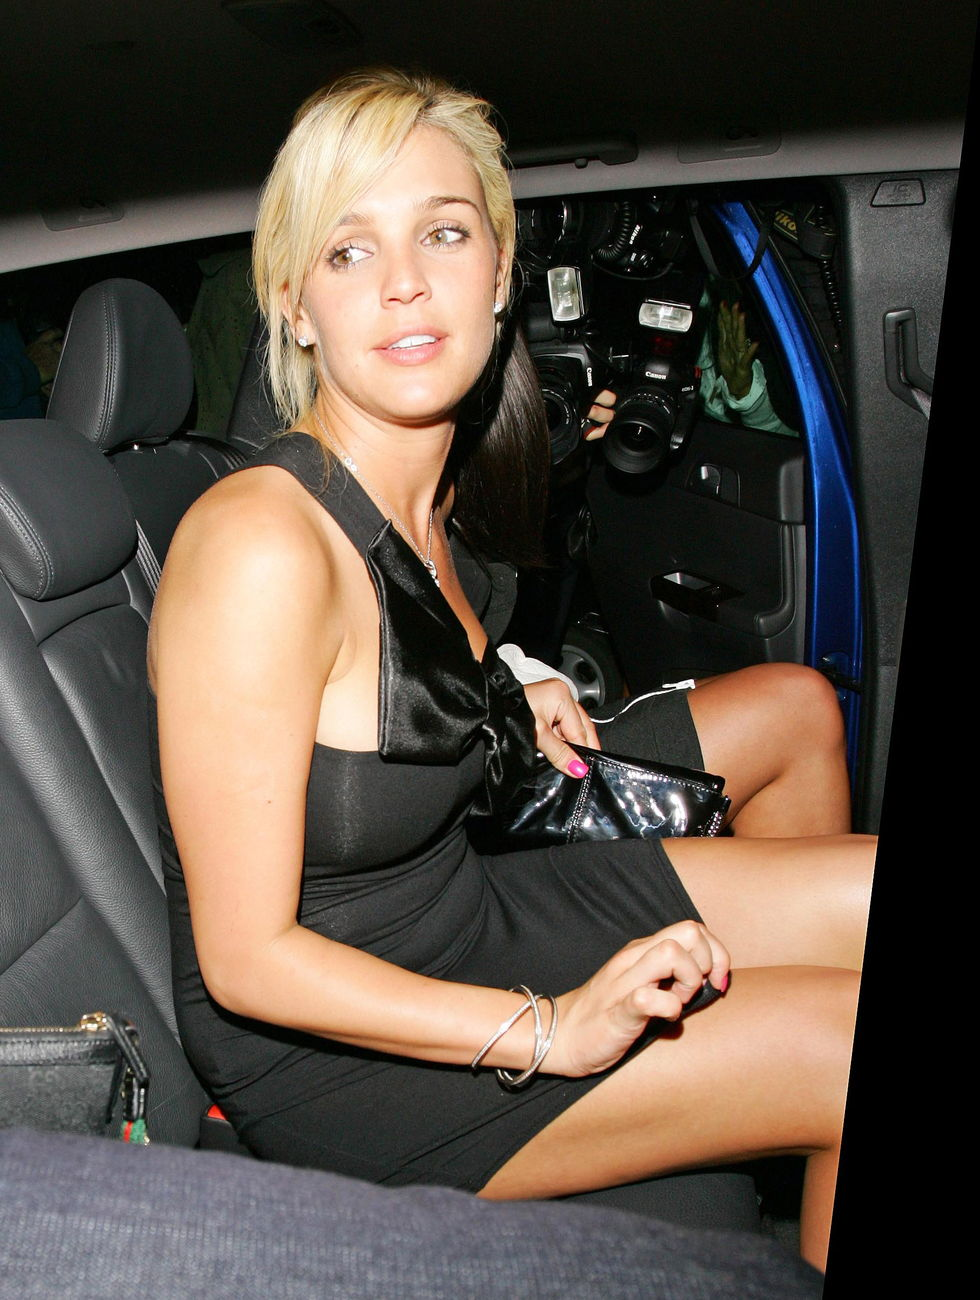 danielle-lloyd-partying-at-the-embassy-club-in-london-01